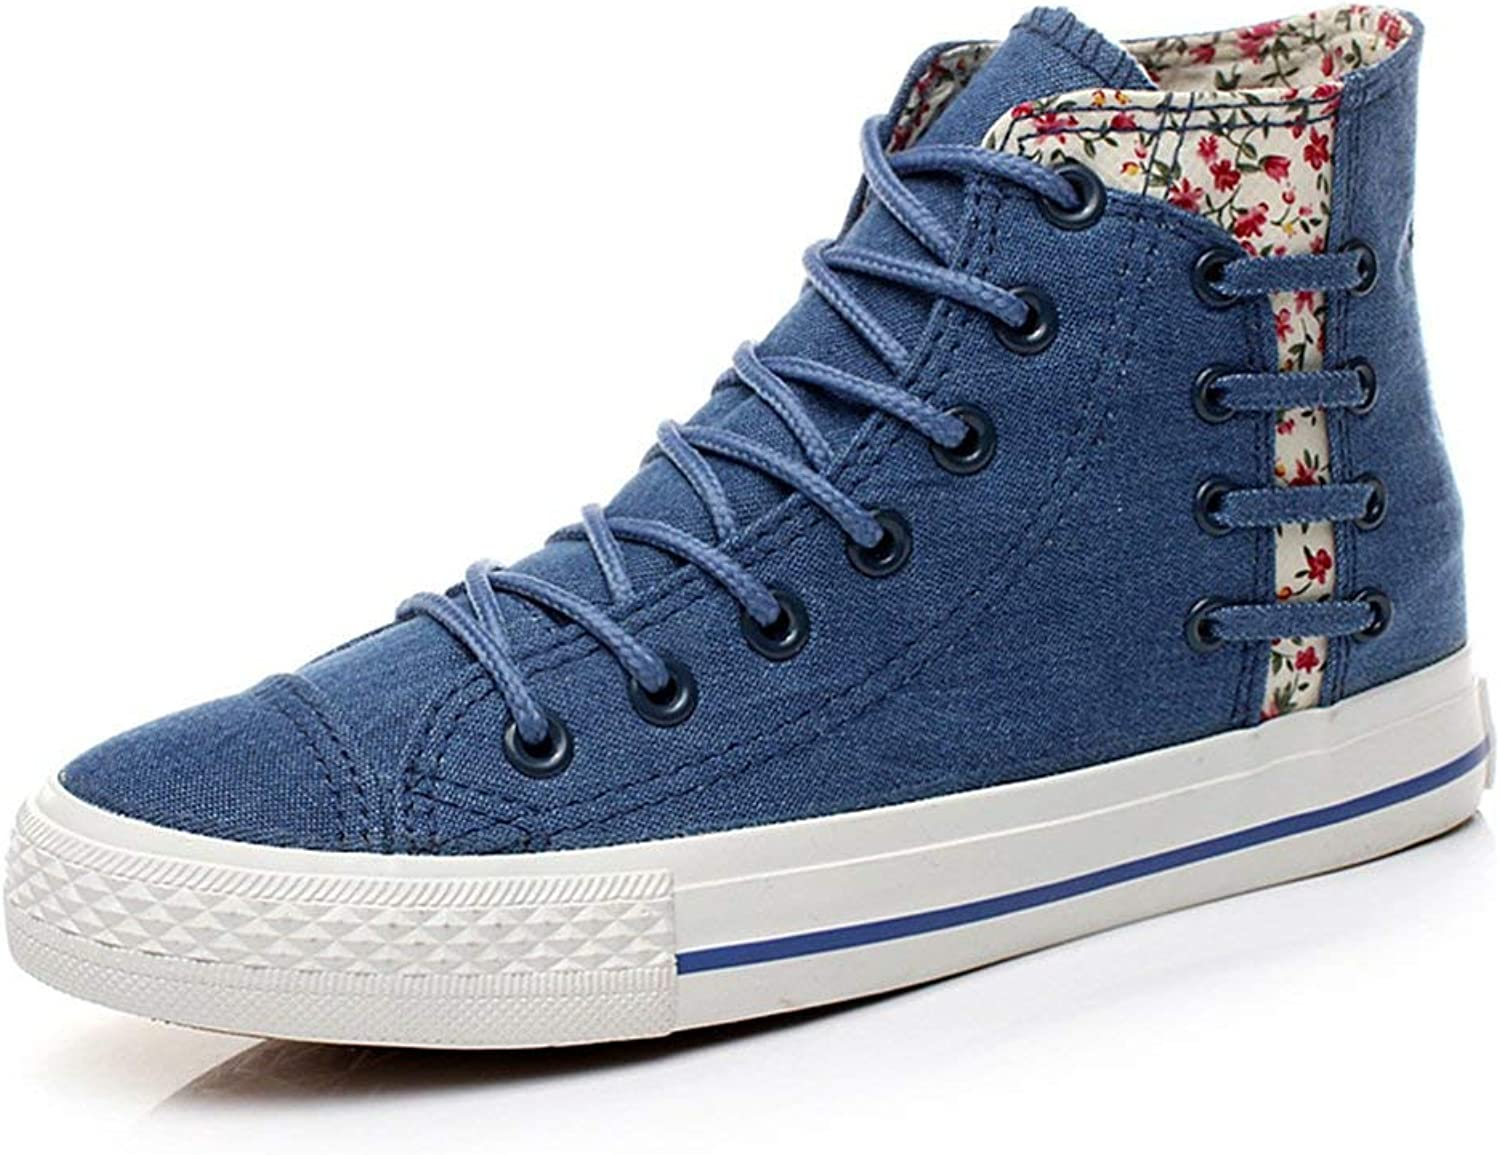 Ghapwe Women's Trendy Floral High Top Denim Sneakers Lace Up Plimsoll Canvas shoes Light bluee 5 M US